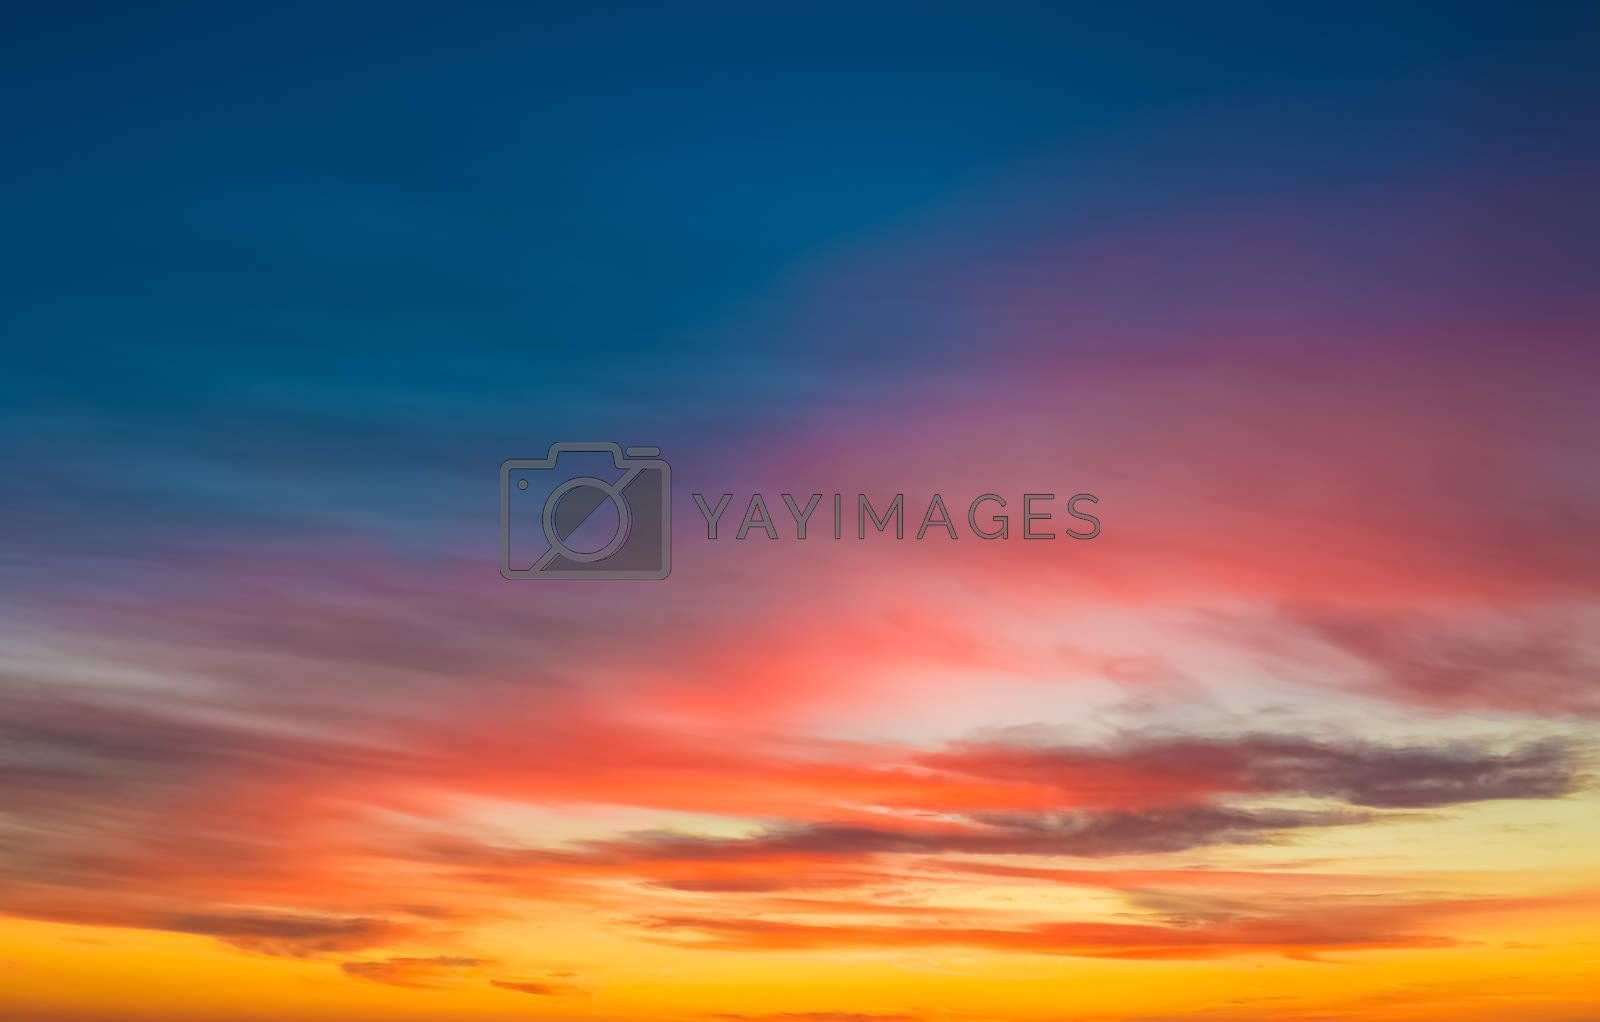 sunset scene wallpaper background, colorful sky with soft clouds,